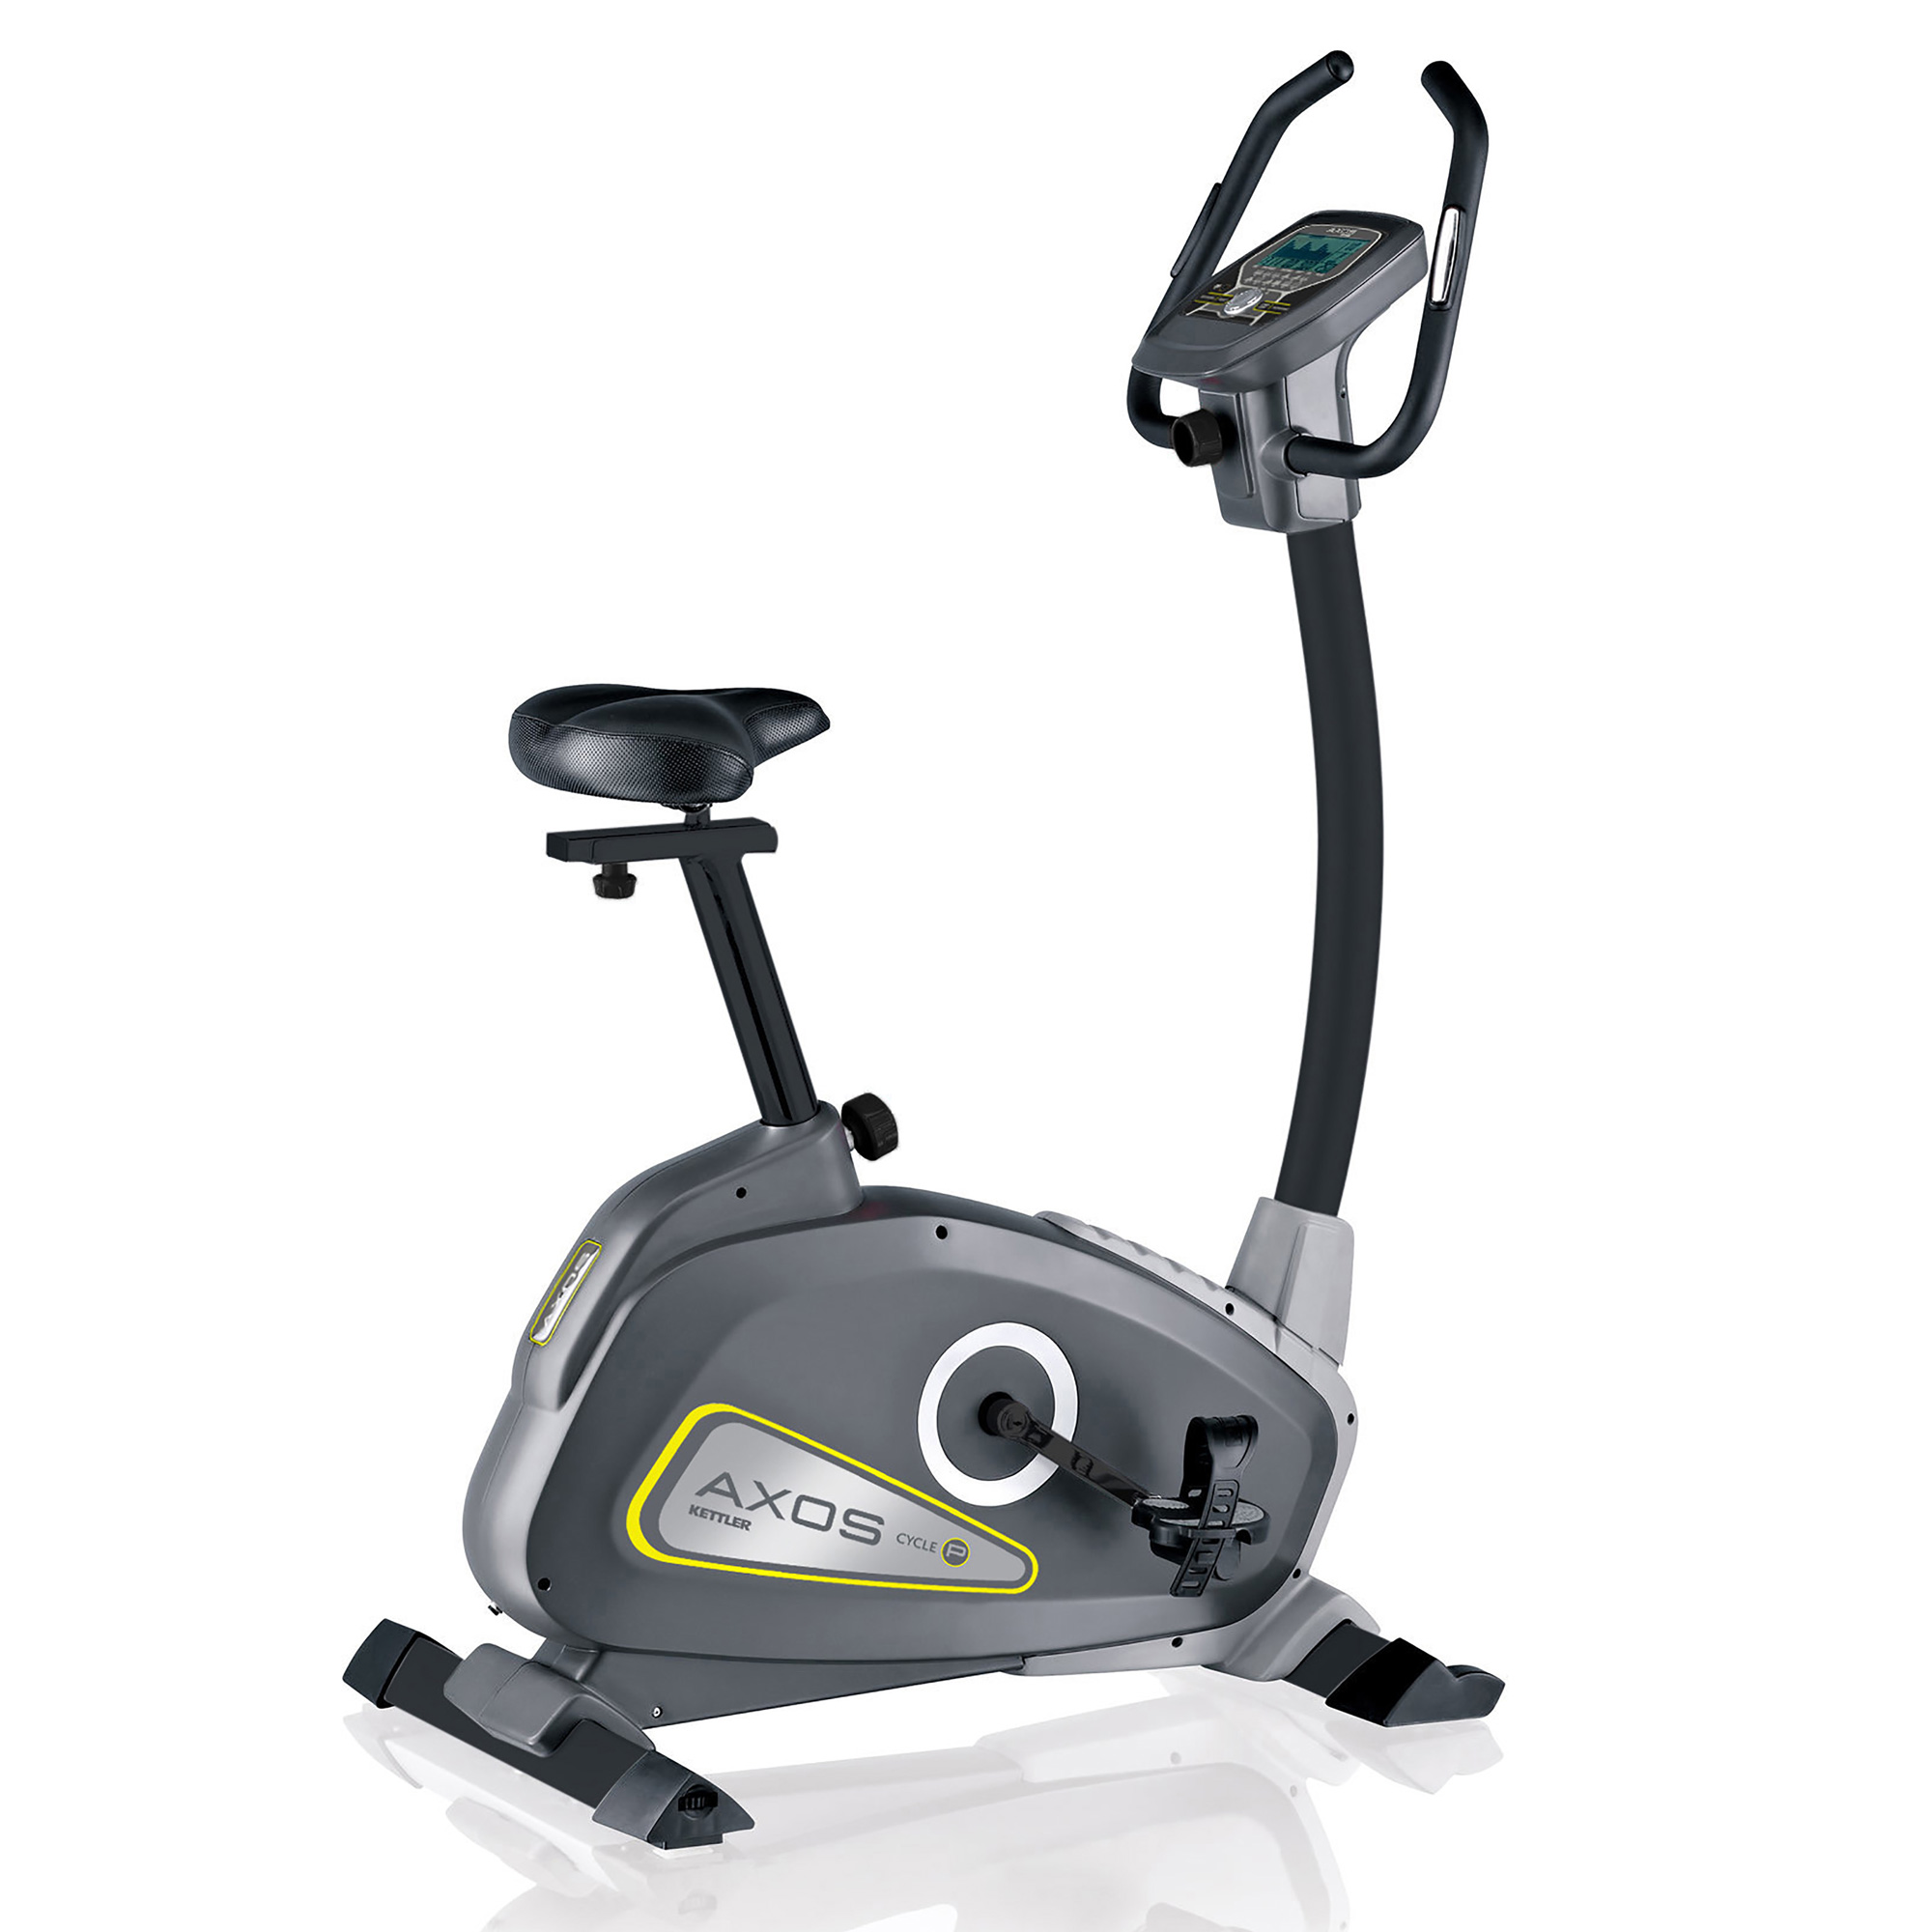 kettler exercise bike shop for cheap weight training and save online. Black Bedroom Furniture Sets. Home Design Ideas